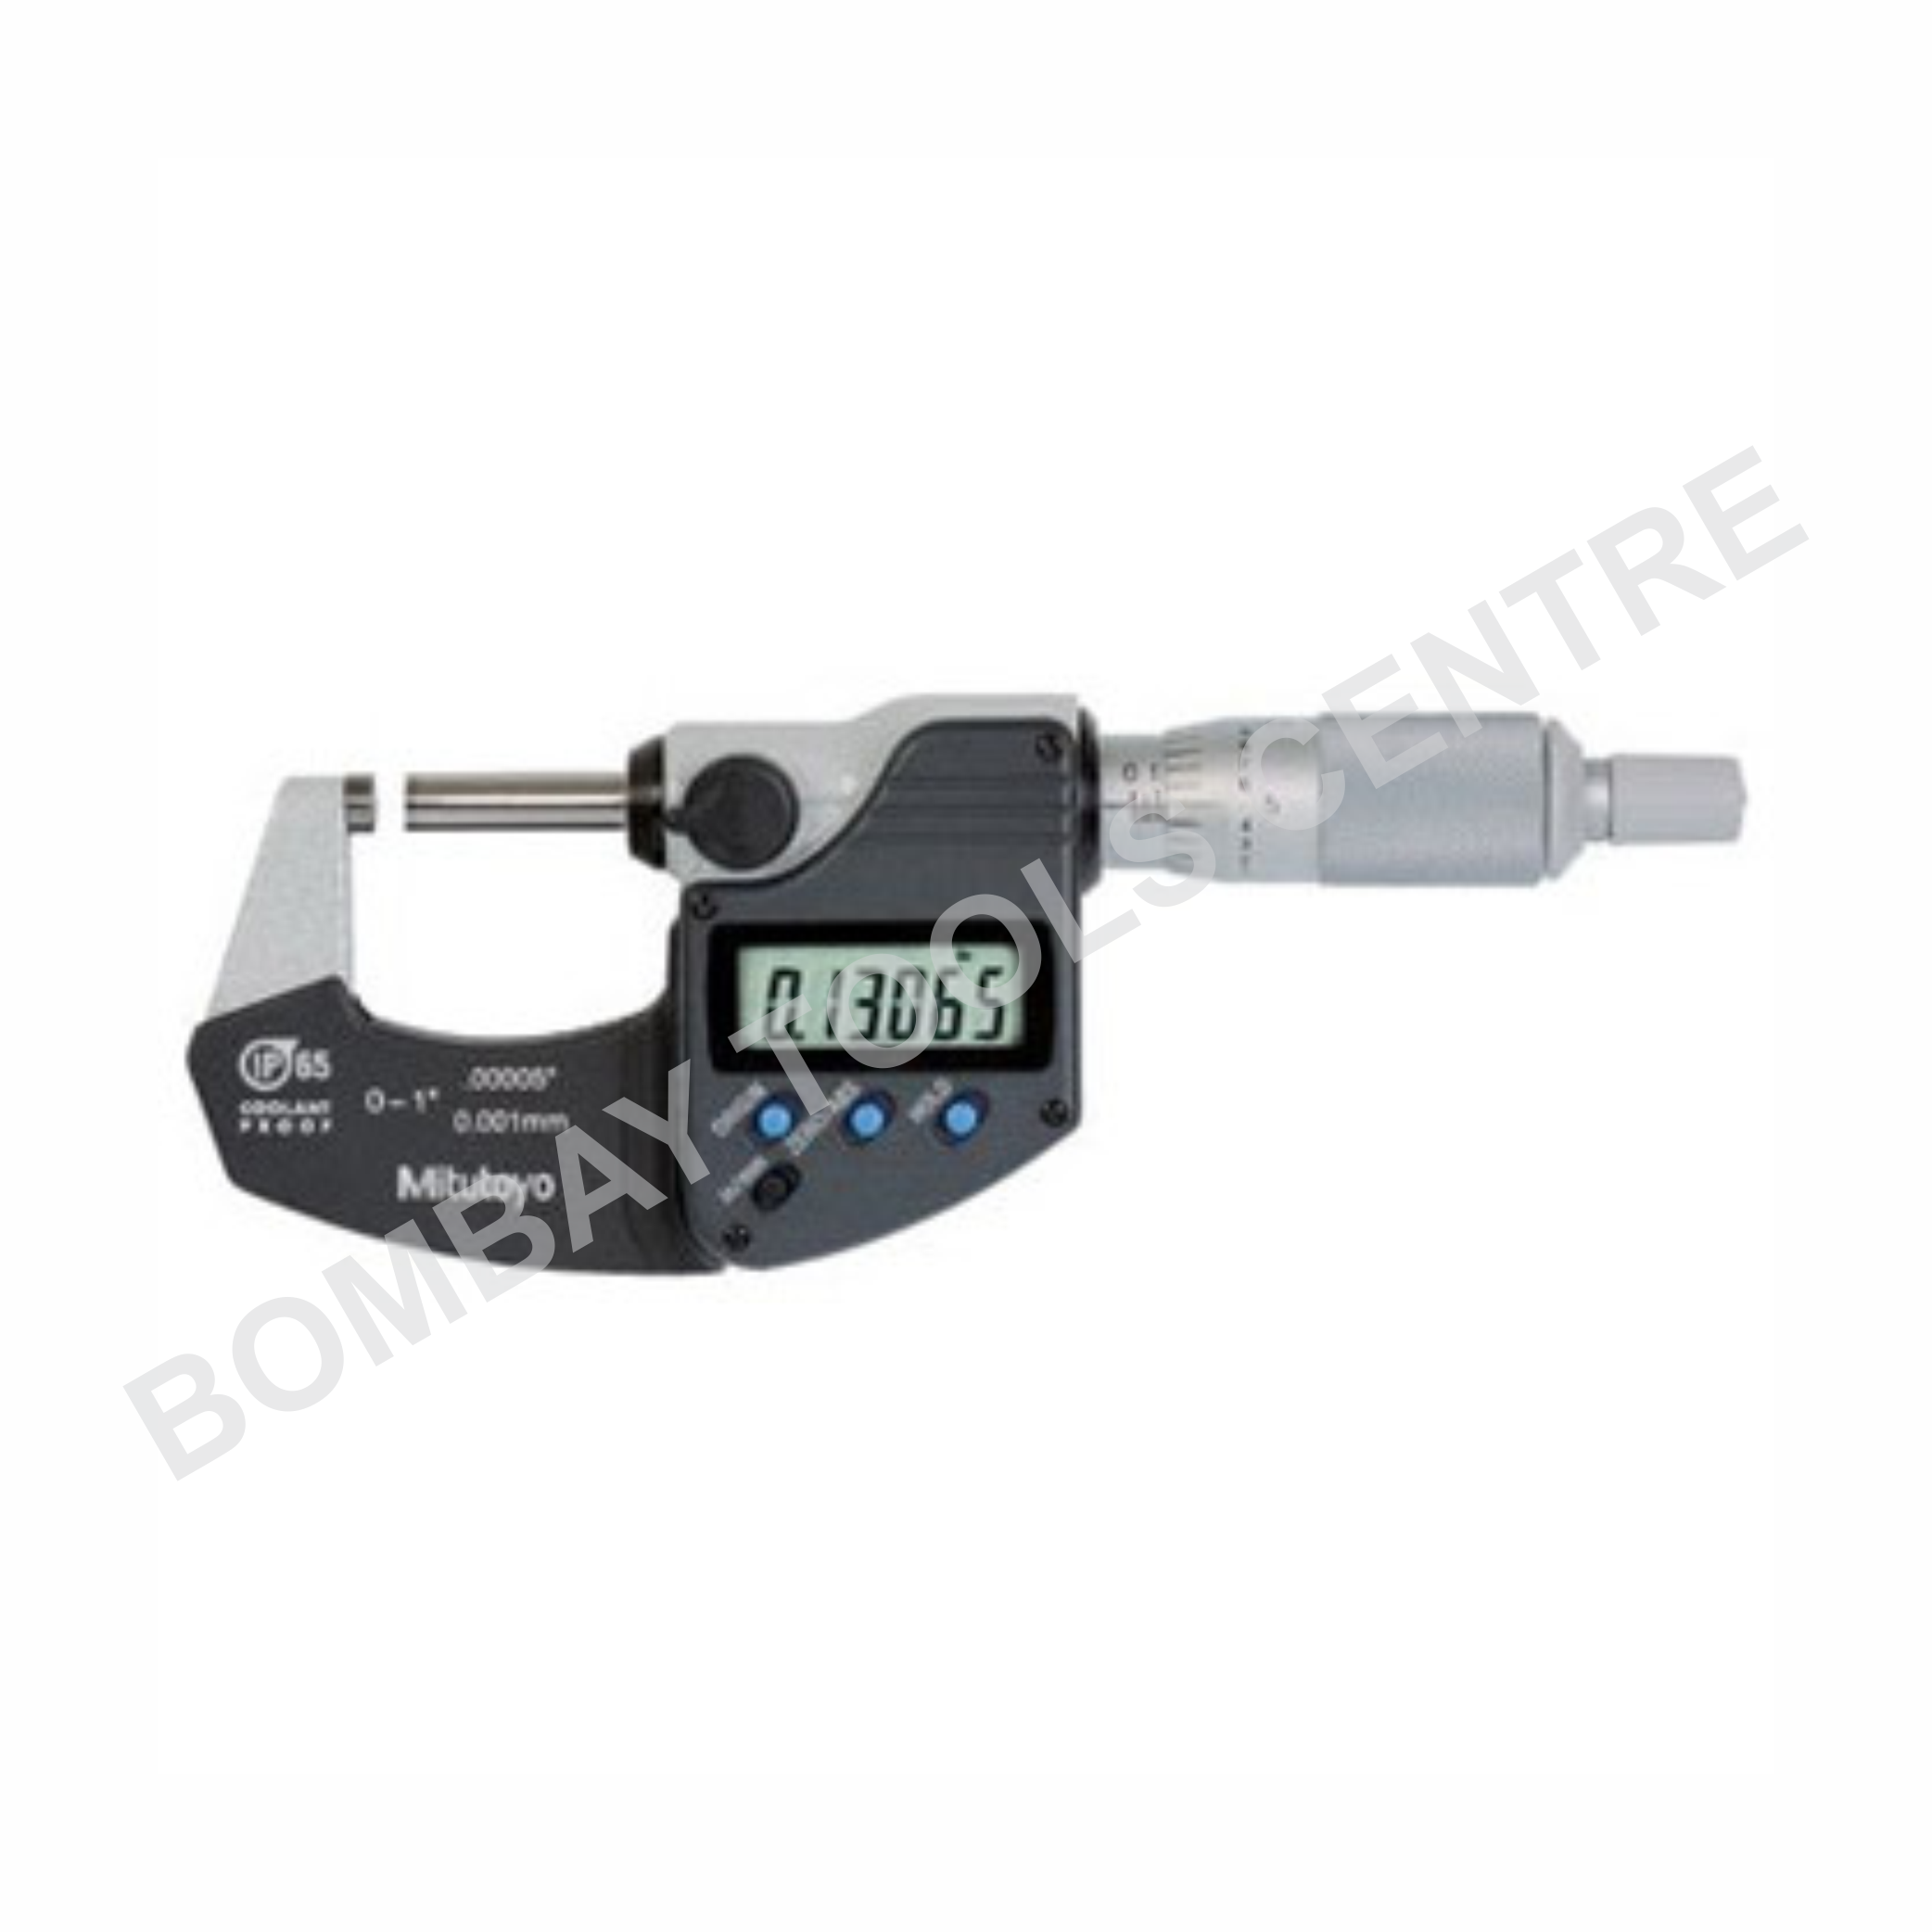 Coolant Proof Micrometer